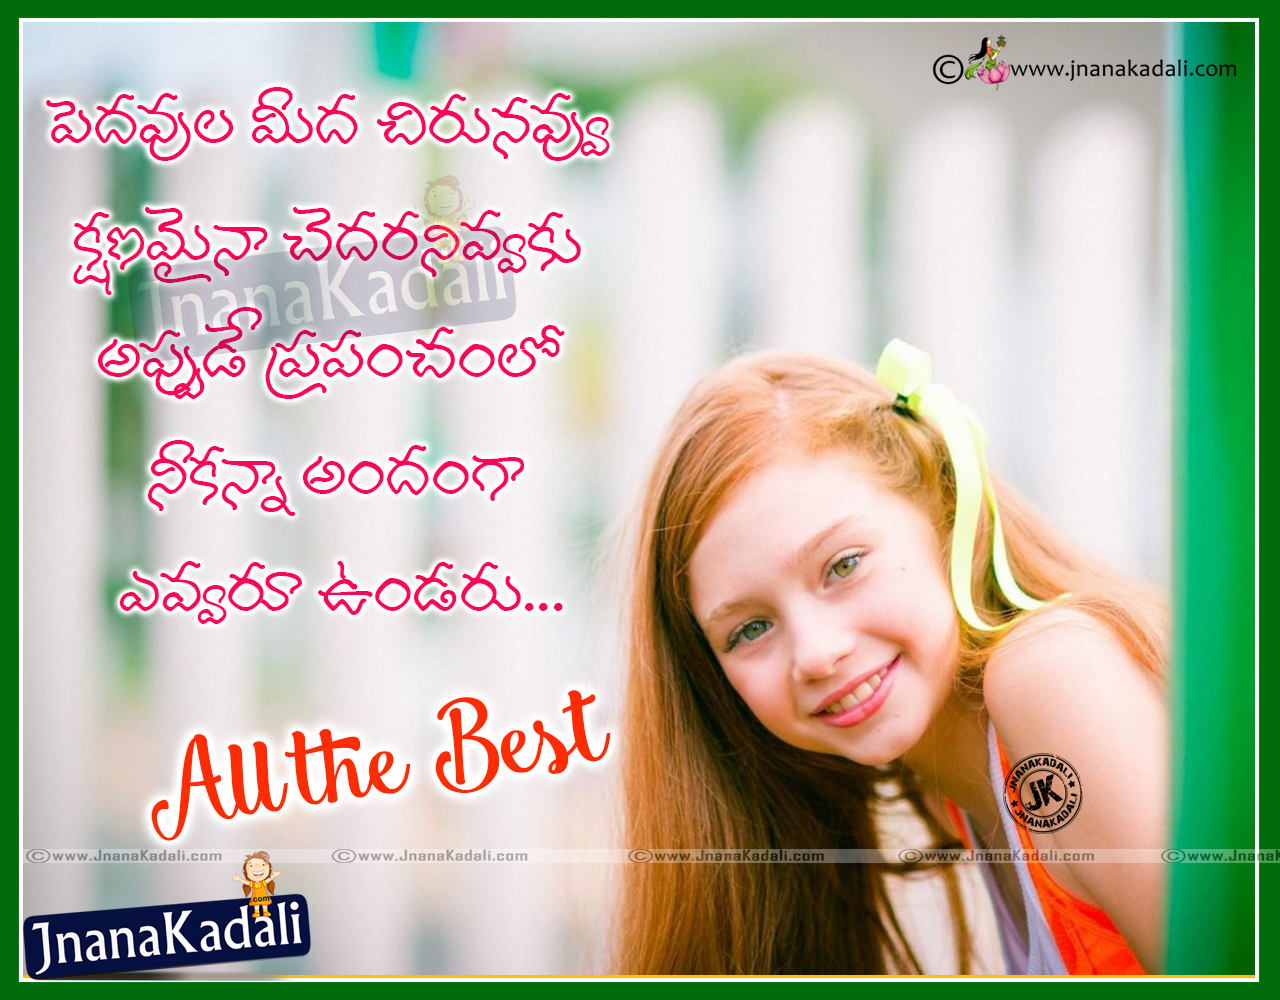 All the best wishes quotes free 21st birthday invitations templates all the best wishes telugu greetings sms quotes hd images brainysms all 2bthe2bbest kristyandbryce Image collections